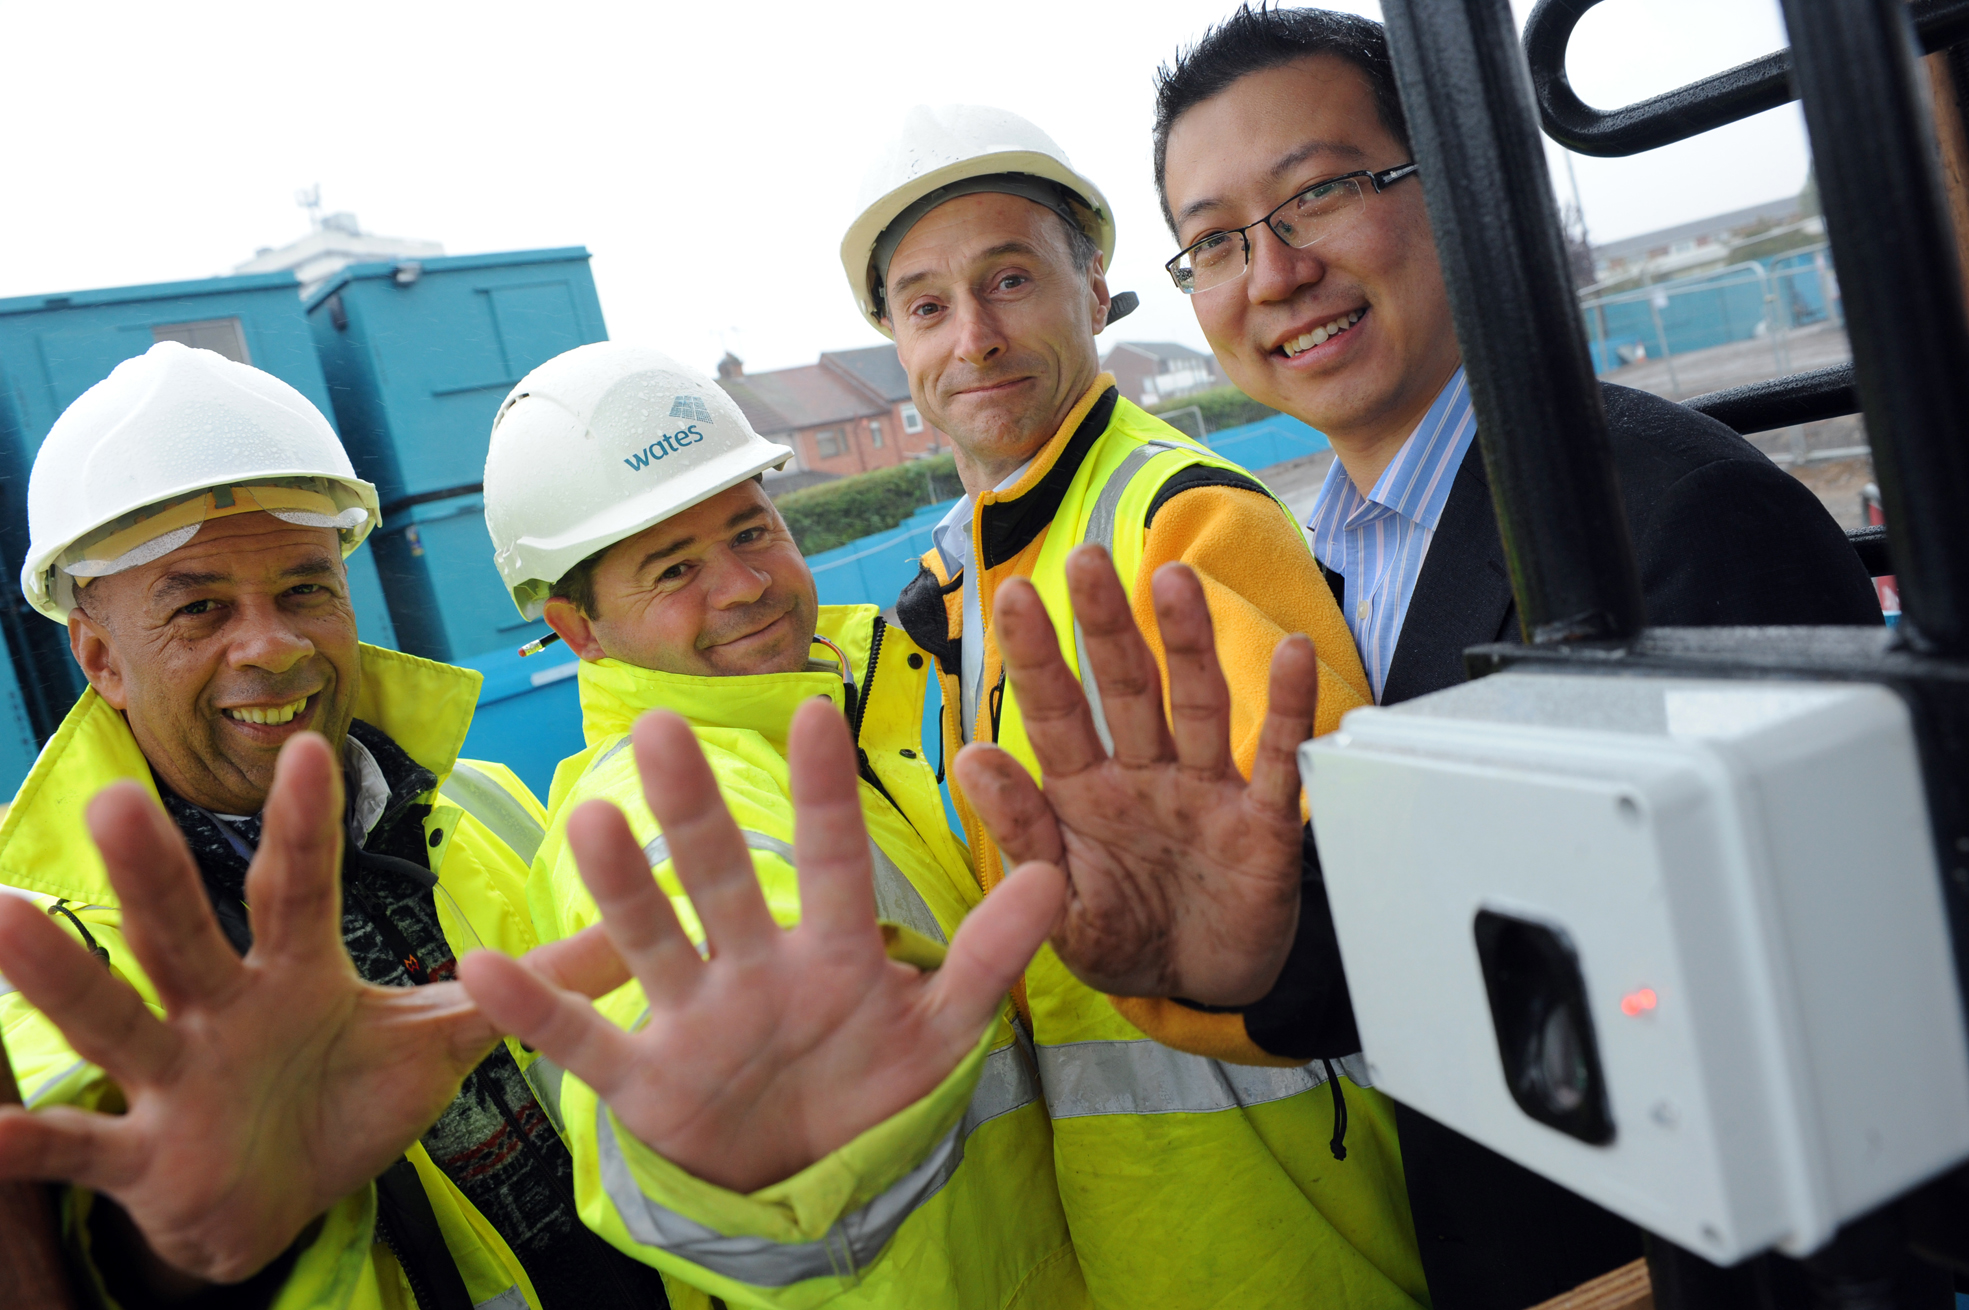 Robert Senior (Site Engineer), Phil Bardsley (Section manager) and Rodney Holland (Managing Director of the equipment's Installation Company - DCS) and Dr Li Wang on far right - builders showing abraded fingerprints, and BioLog equipment in use on a Coventry building site